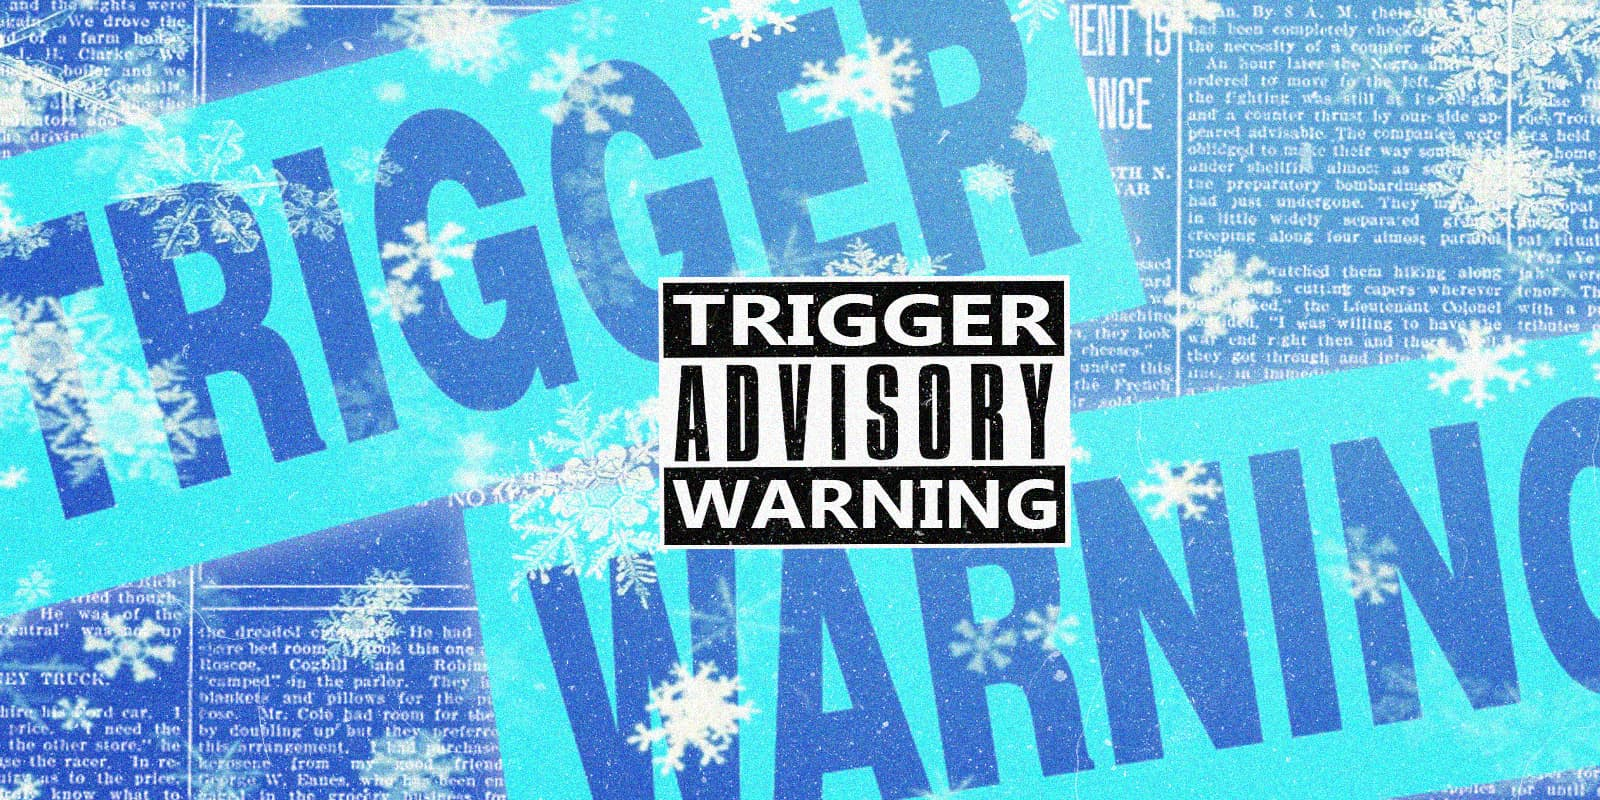 Trigger warnings don't work, so why do we use them?